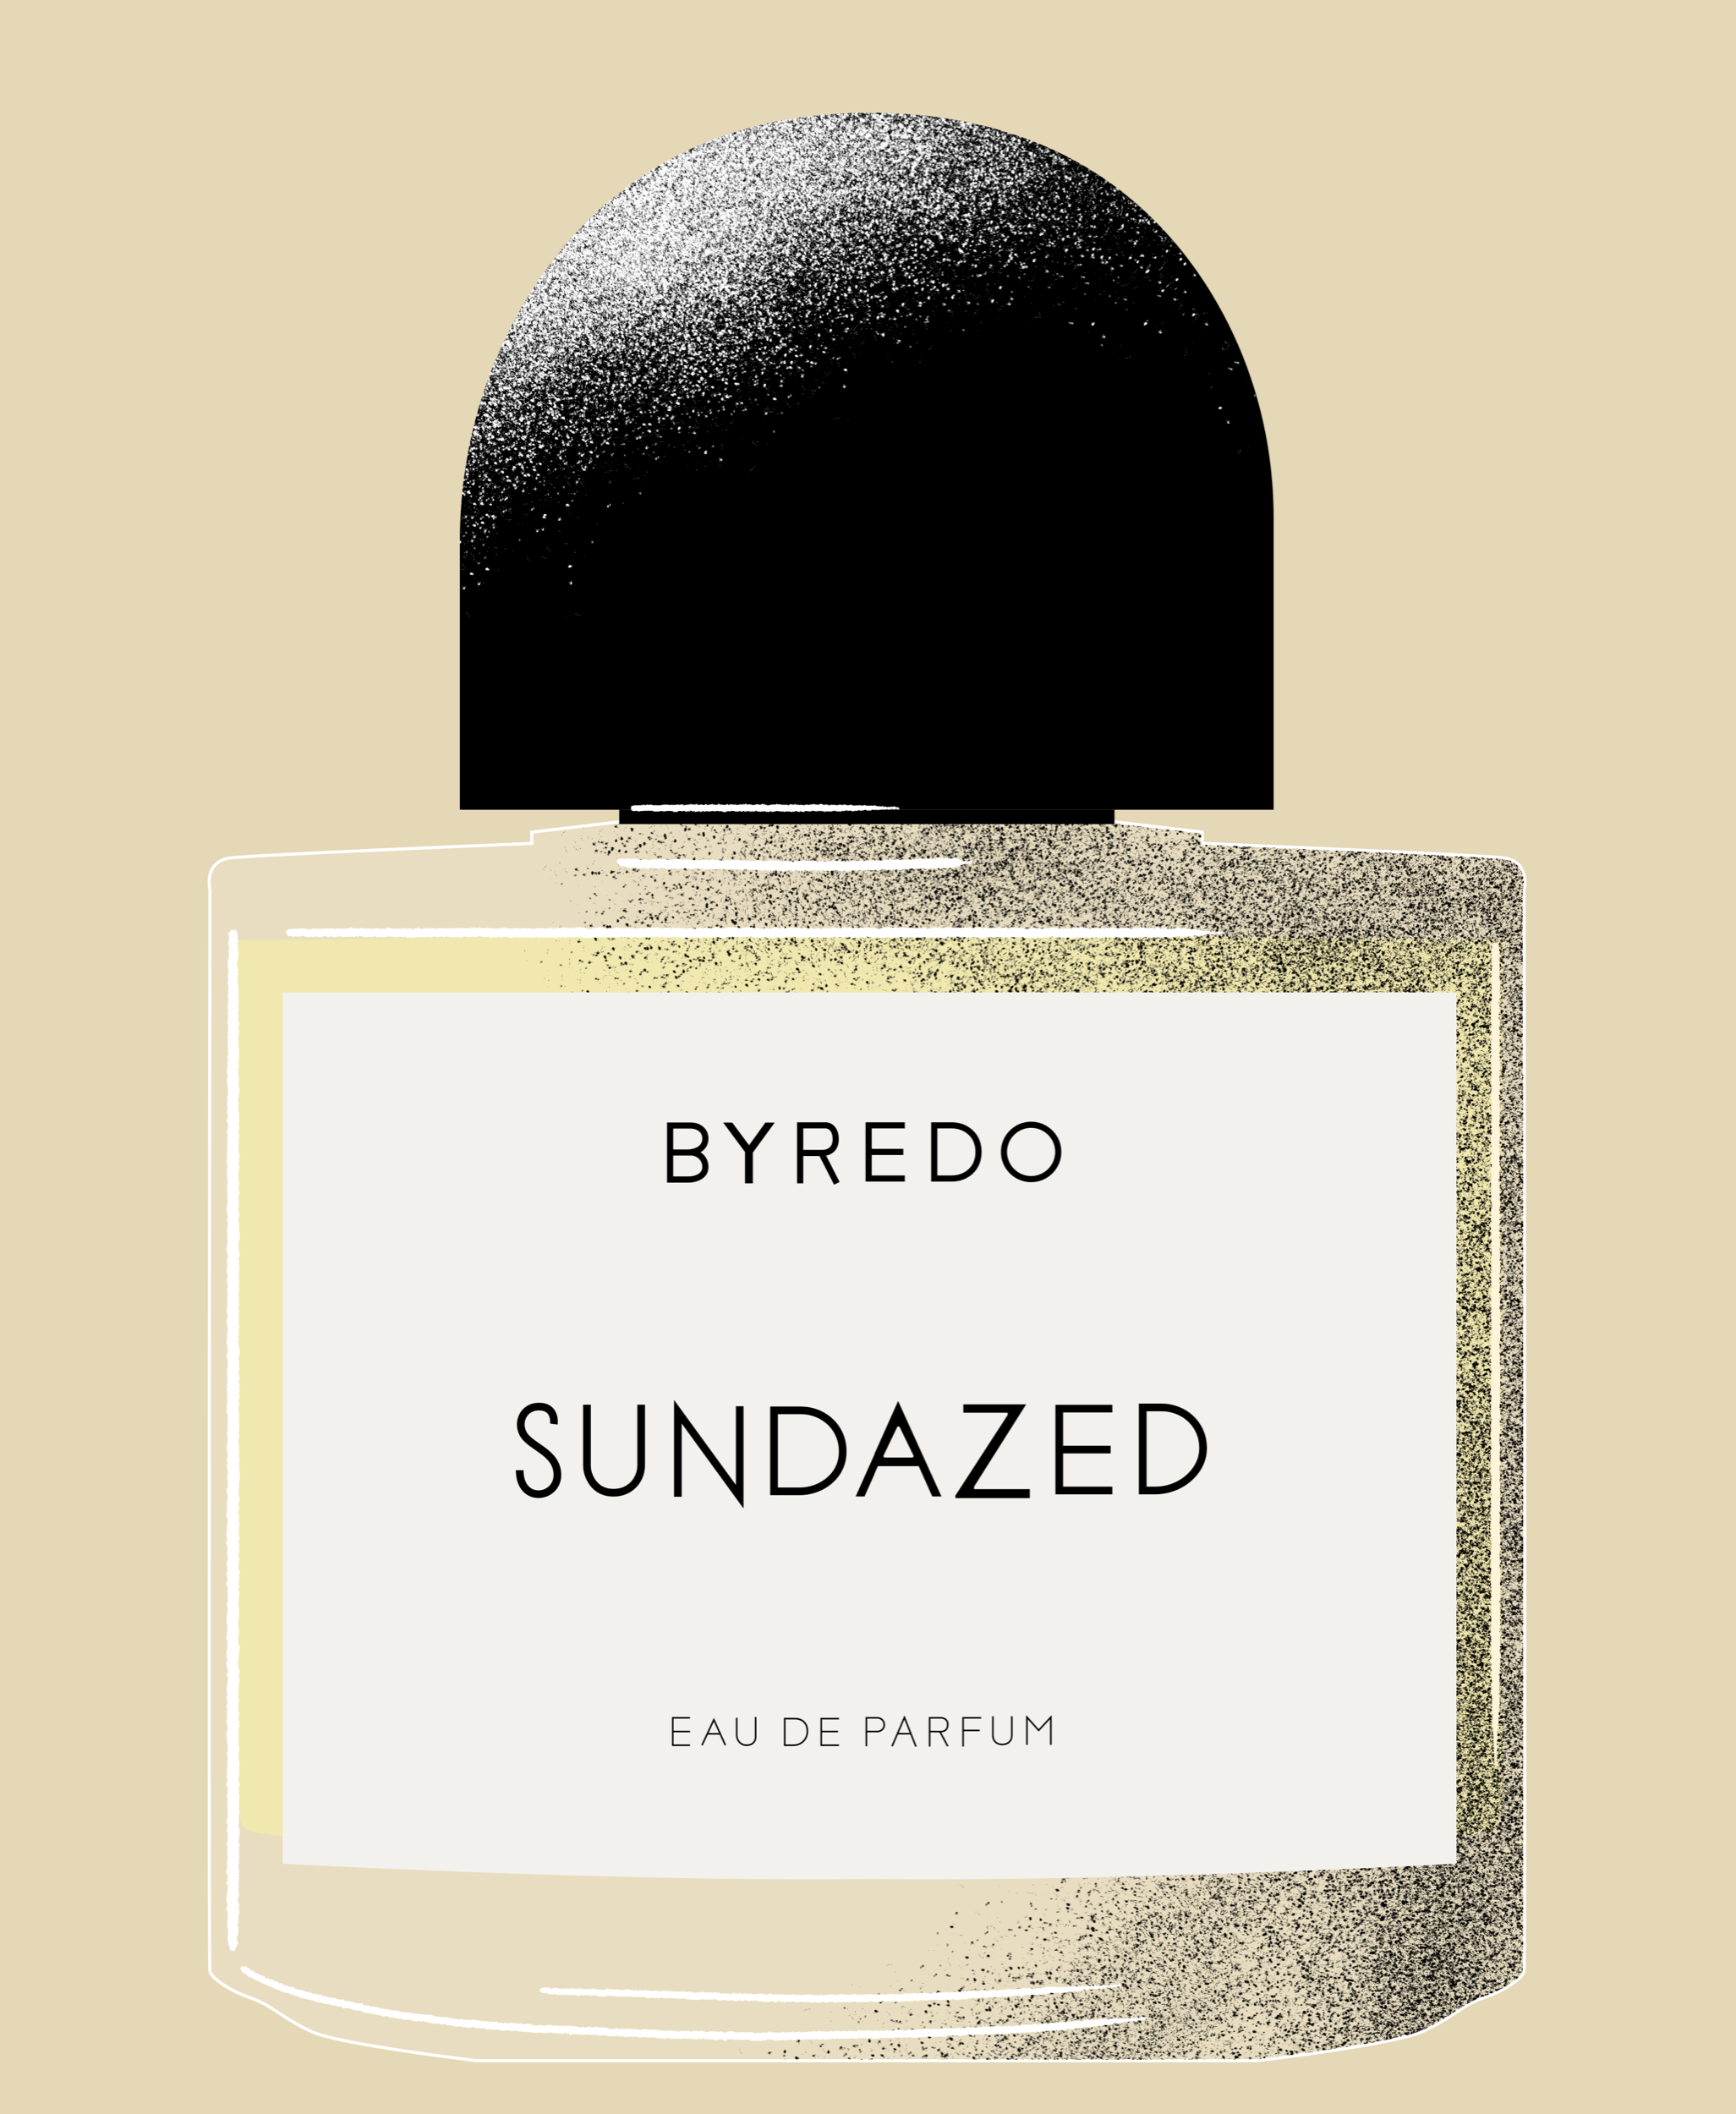 wh_01_06_byredo.png